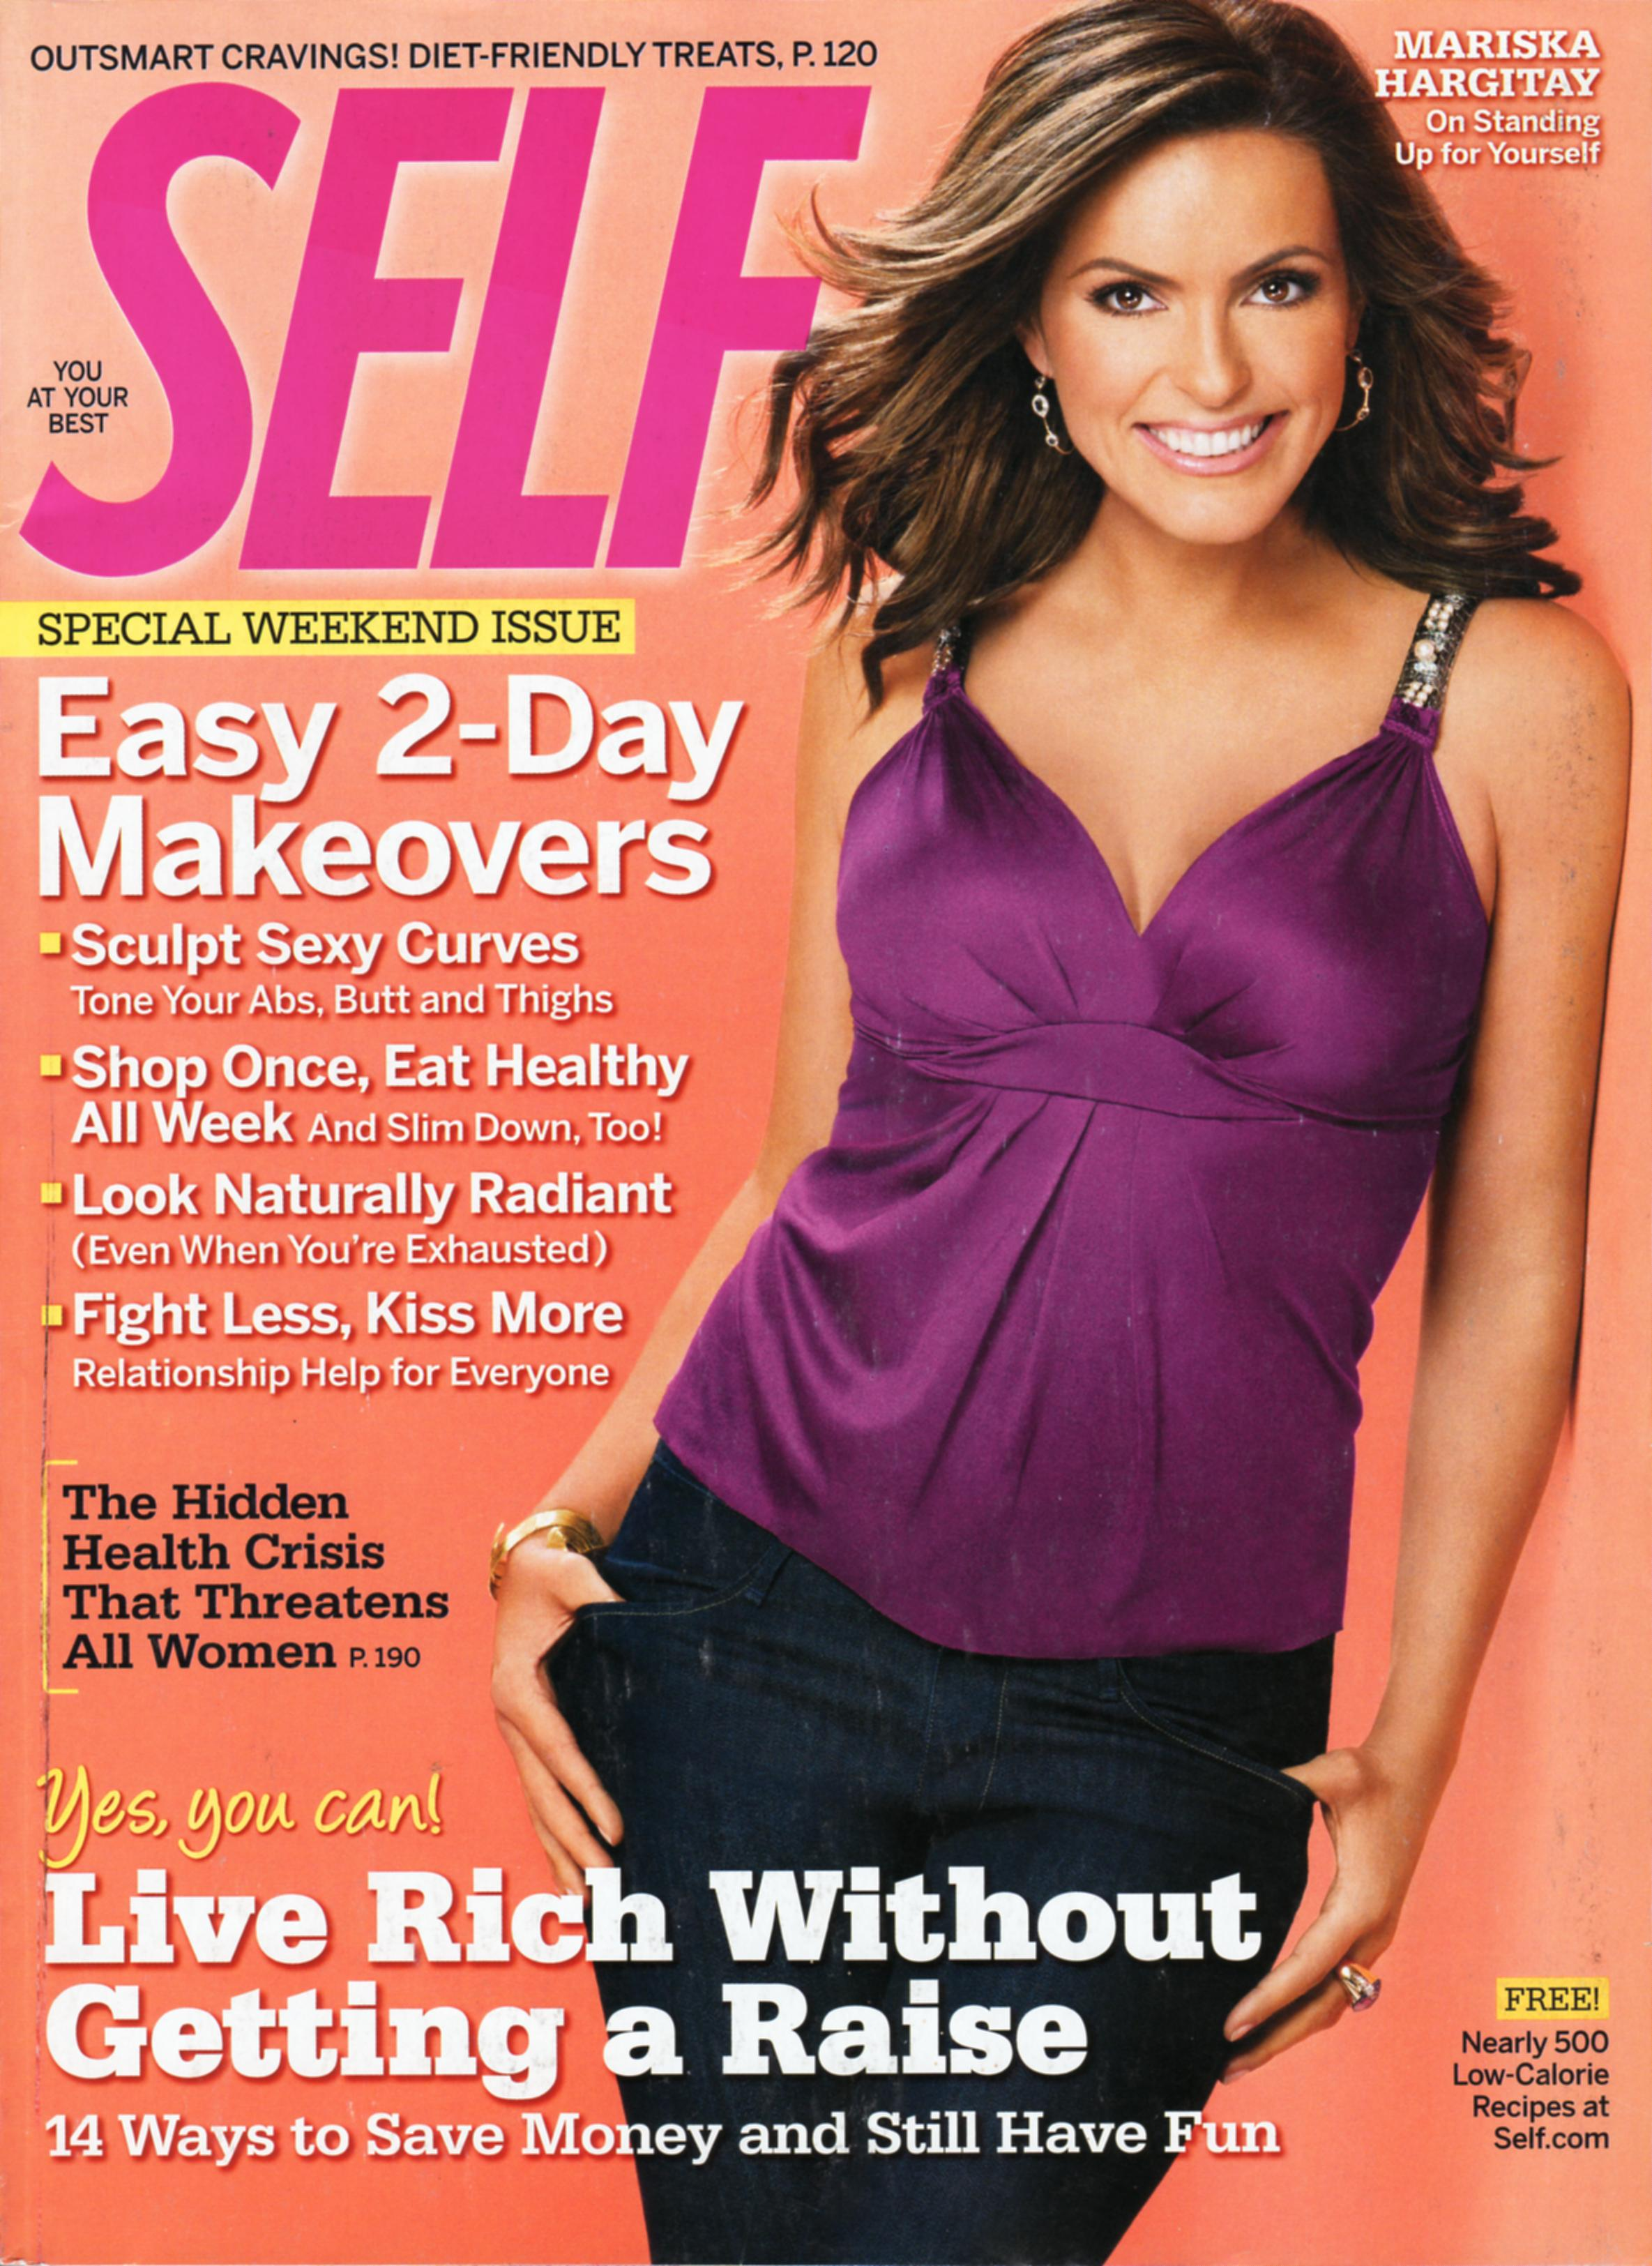 mariska hargitay law amp order special victims unit is on the cover